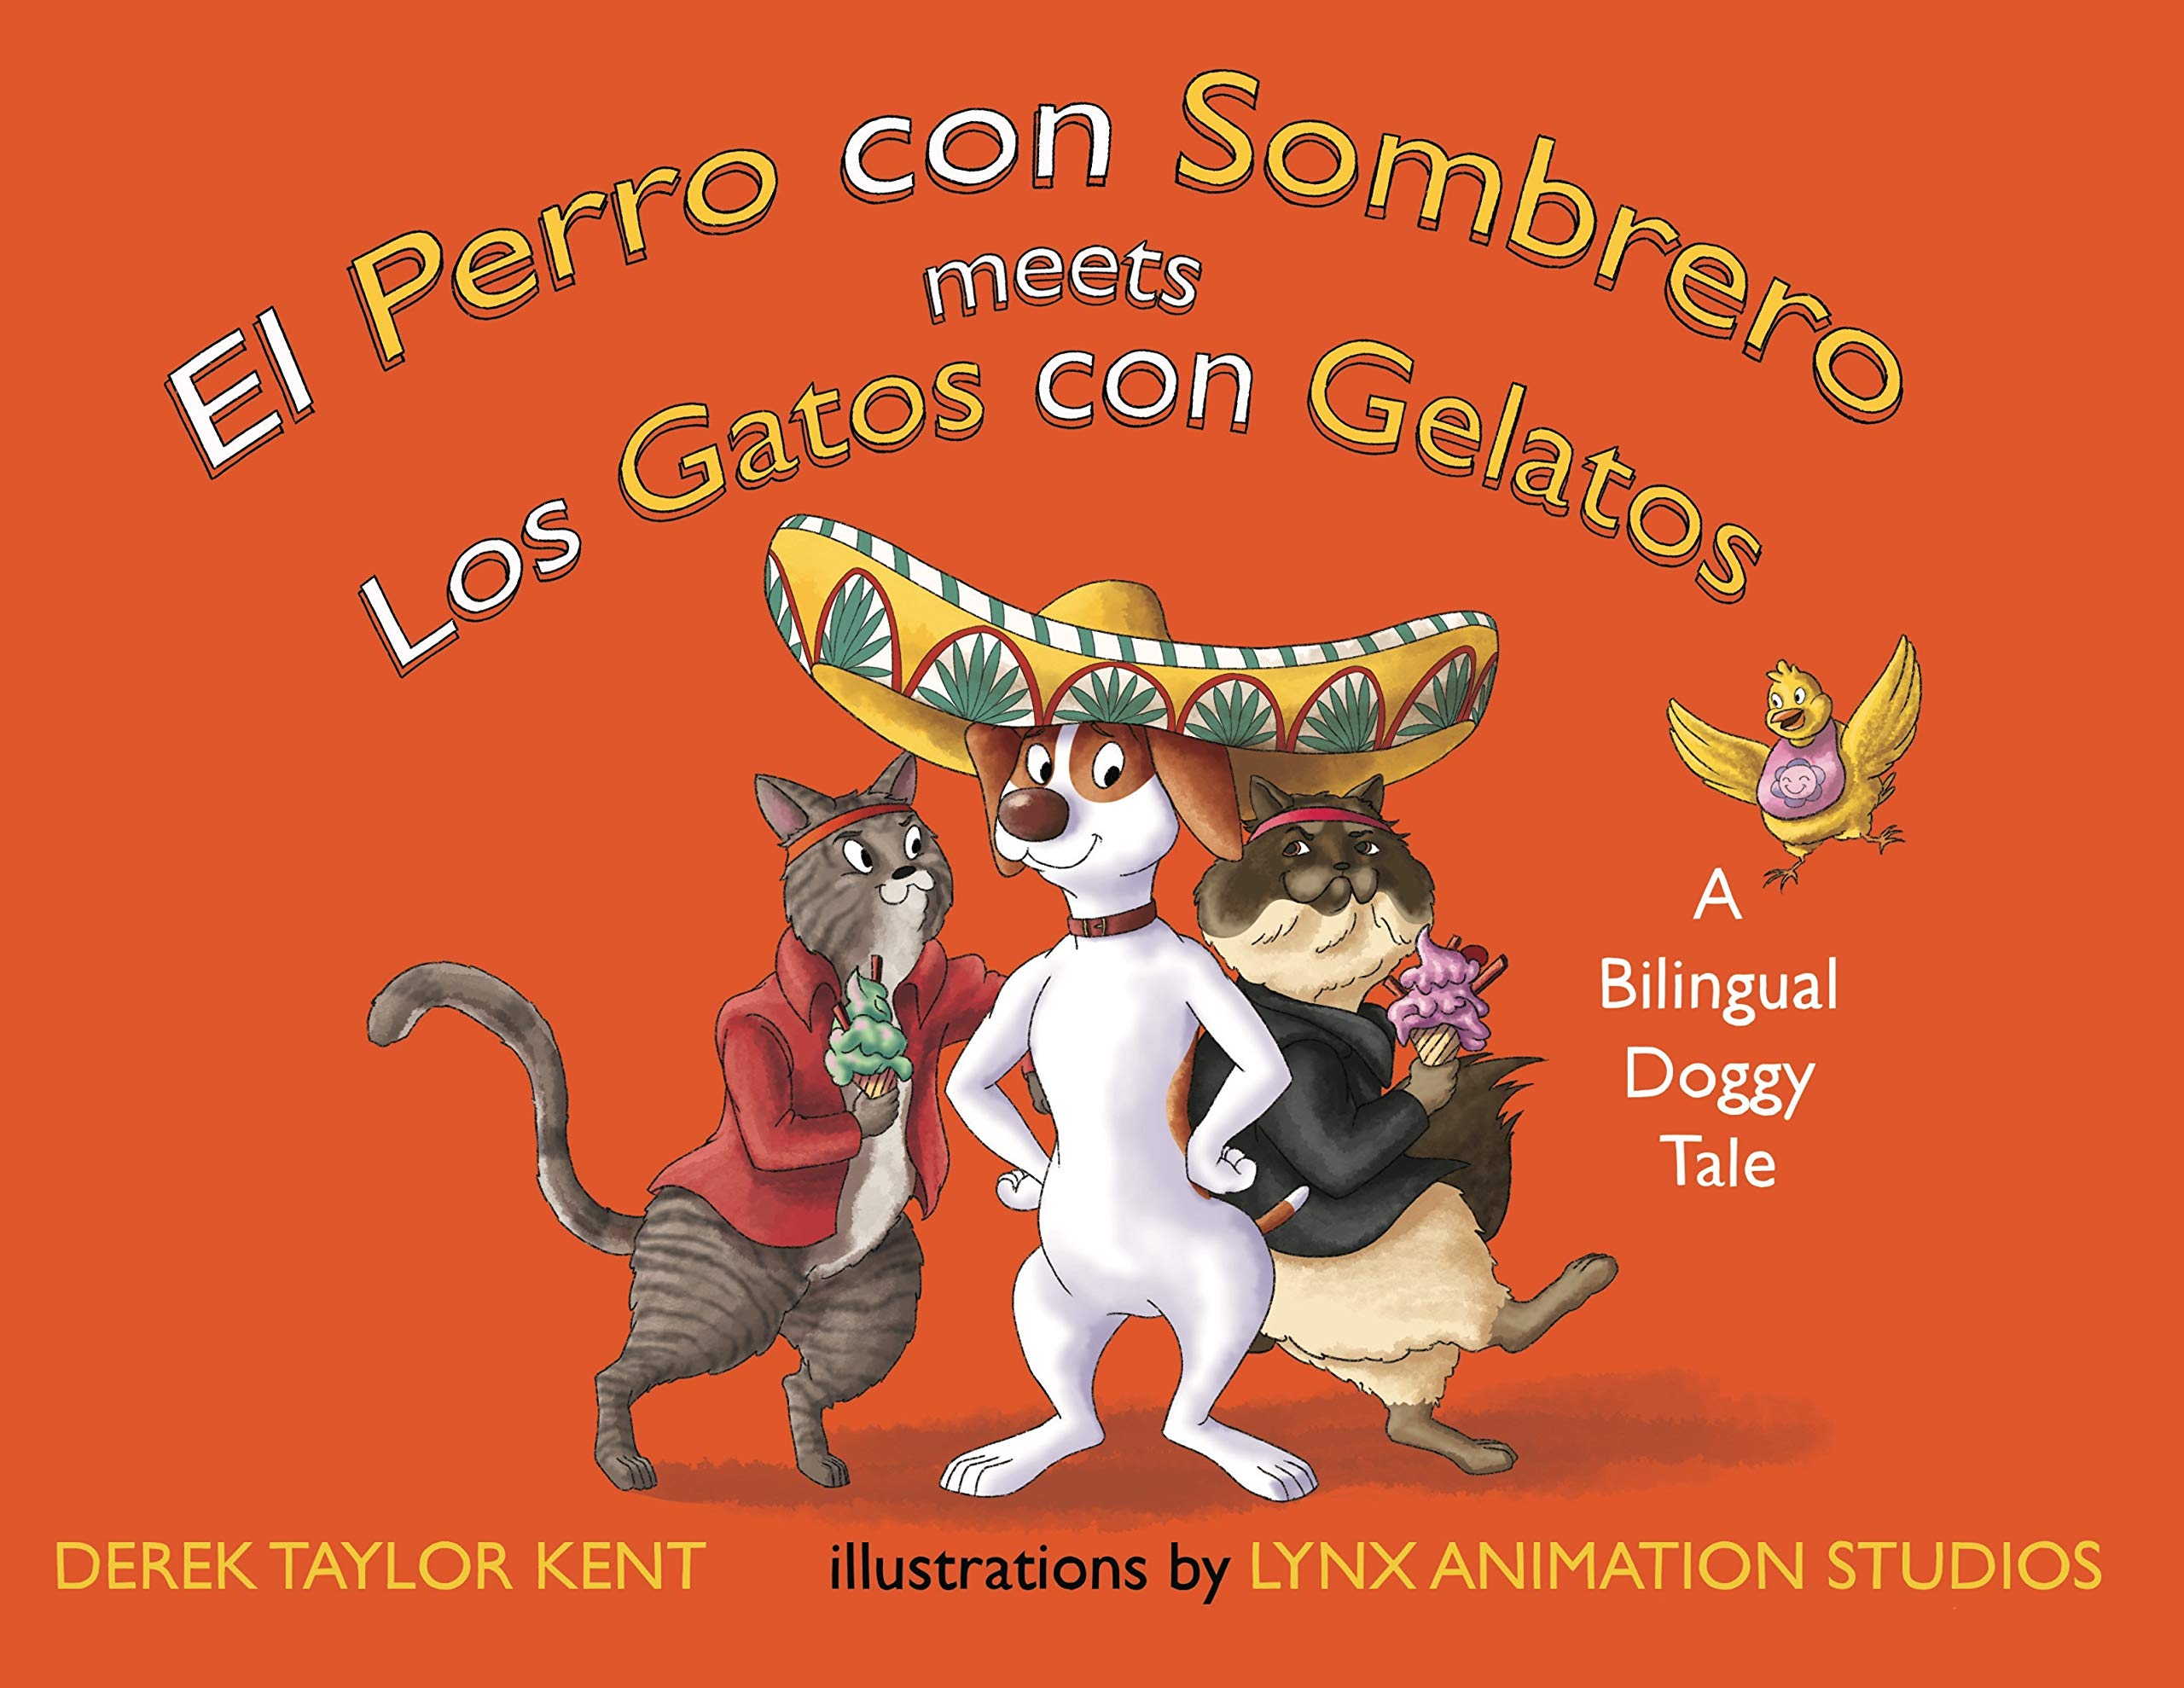 El Perro con Sombrero meets Los Gatos con Gelatos (English and Spanish Edition) (Spanish) Hardcover – April 16, 2019